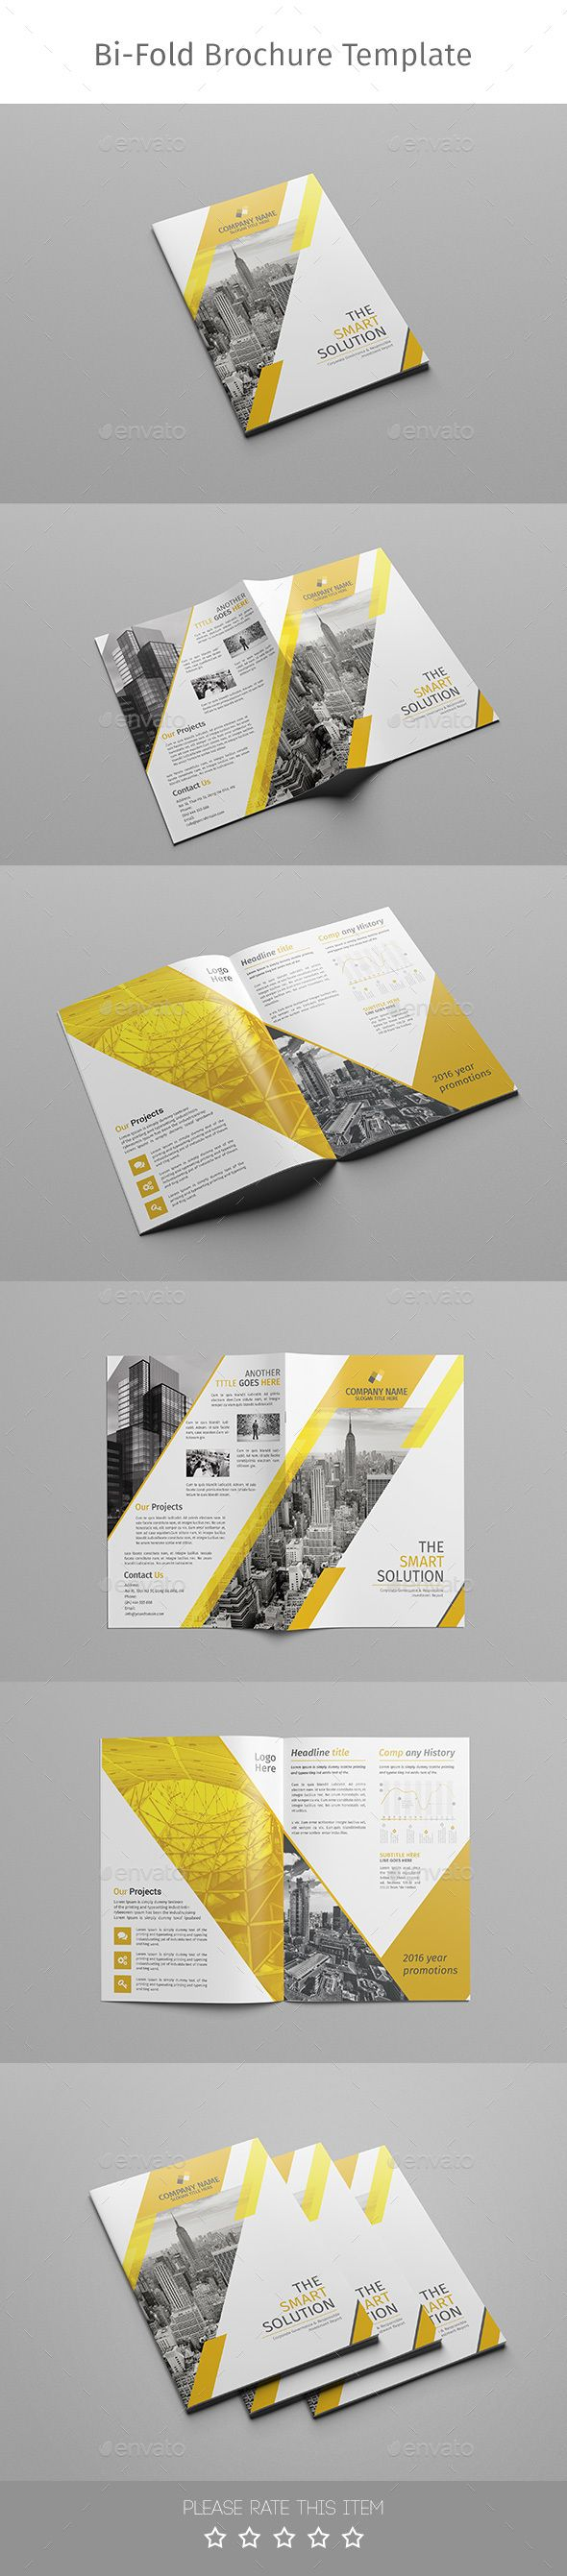 Corporate Bi-fold Brochure-Multipurpose 02 This layout is suitable for any project purpose. Very easy to use and customise. Features bi-fold ( 4 Panel) A4 (21×29.7) with bleeds 3mm Photoshop Template (PSD) very well organized design editable layers change color easy all text is editable 300 DPI CMYK Colors